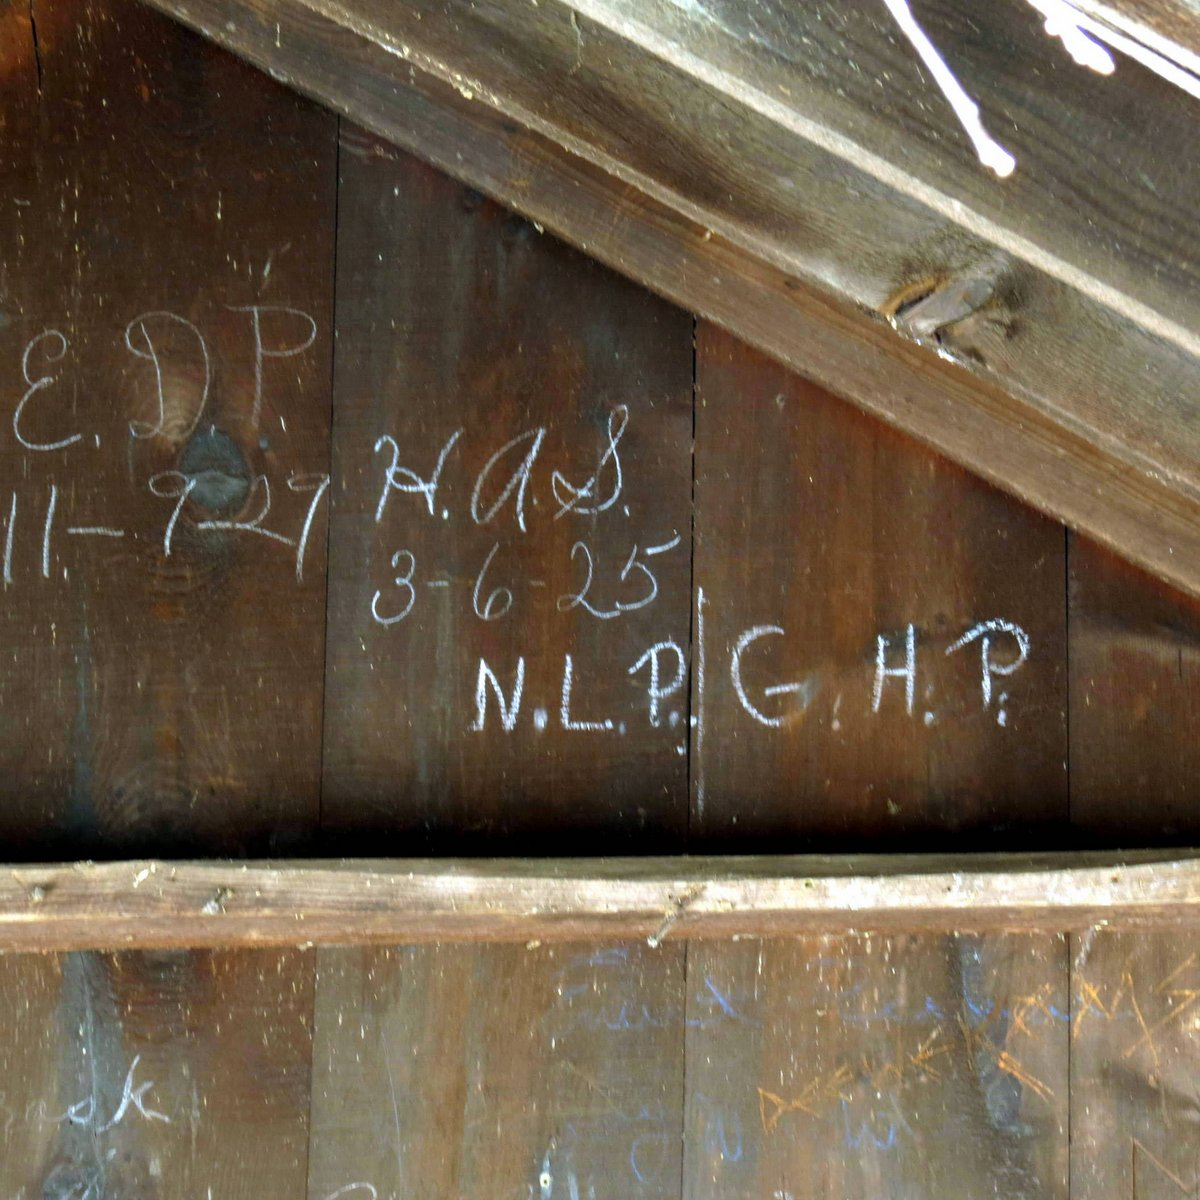 14. Railroad Shack Graffiti